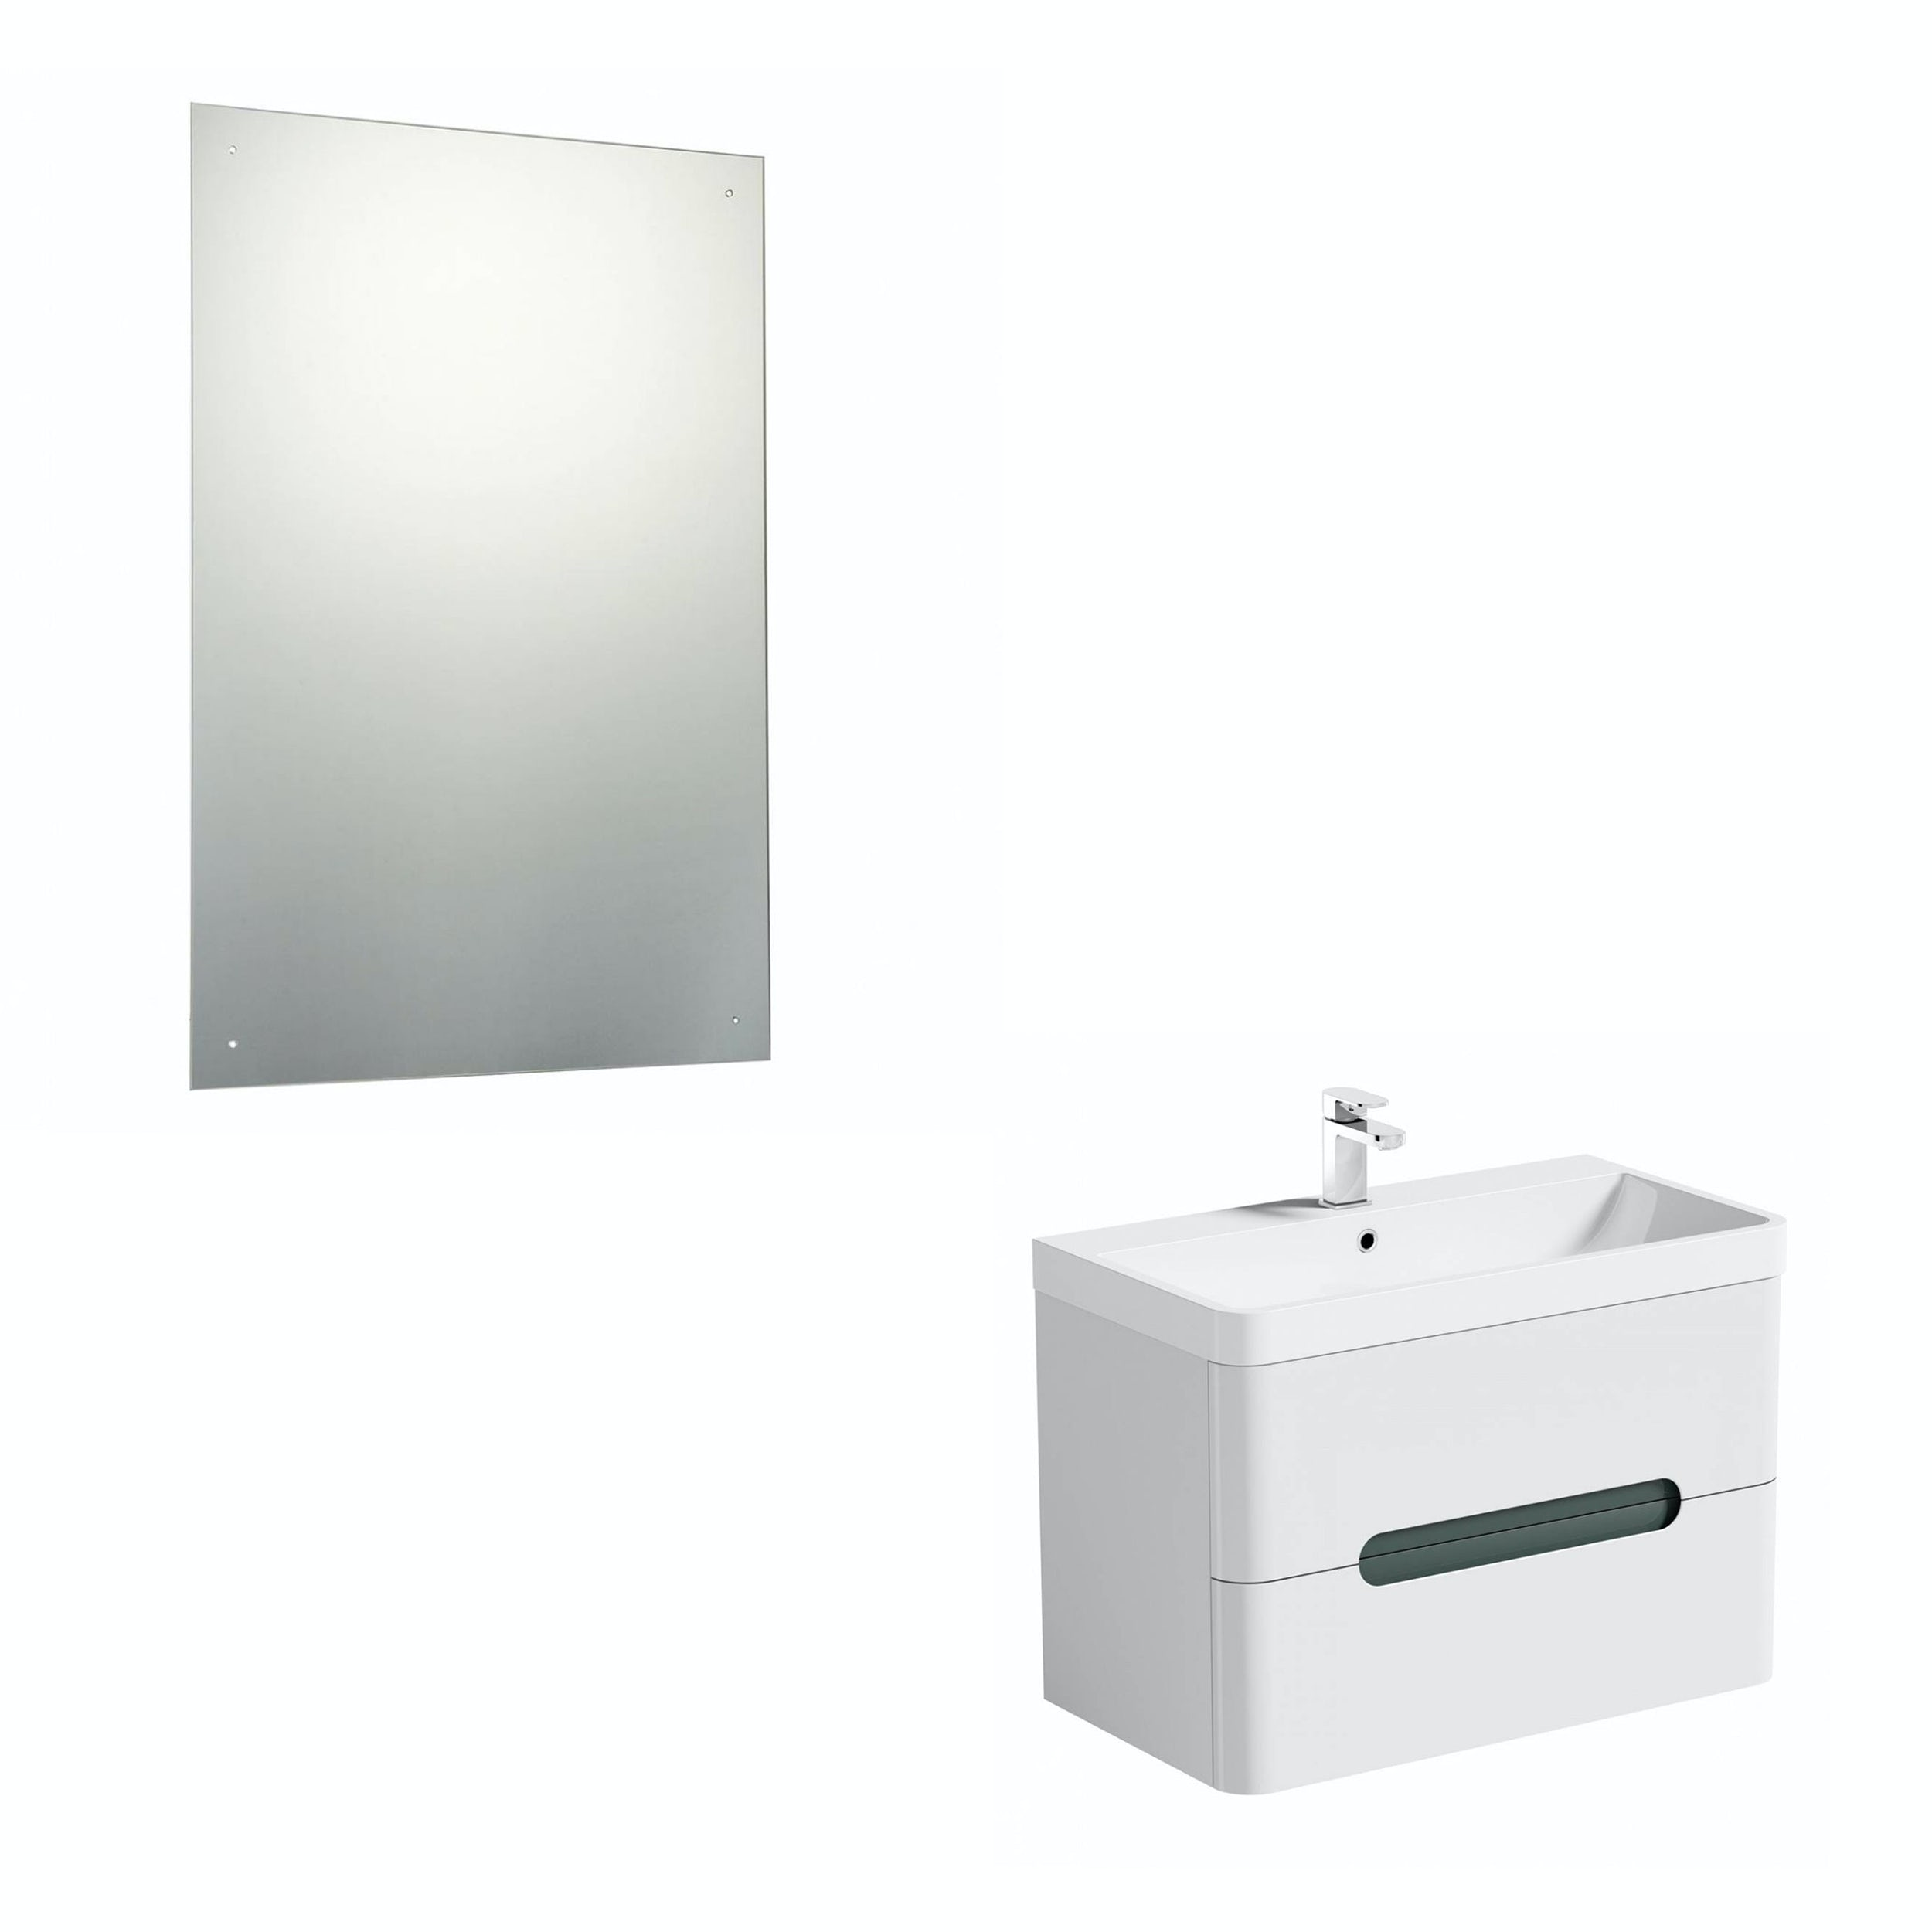 Mode Ellis select slate 800 wall hung unit and mirror offer